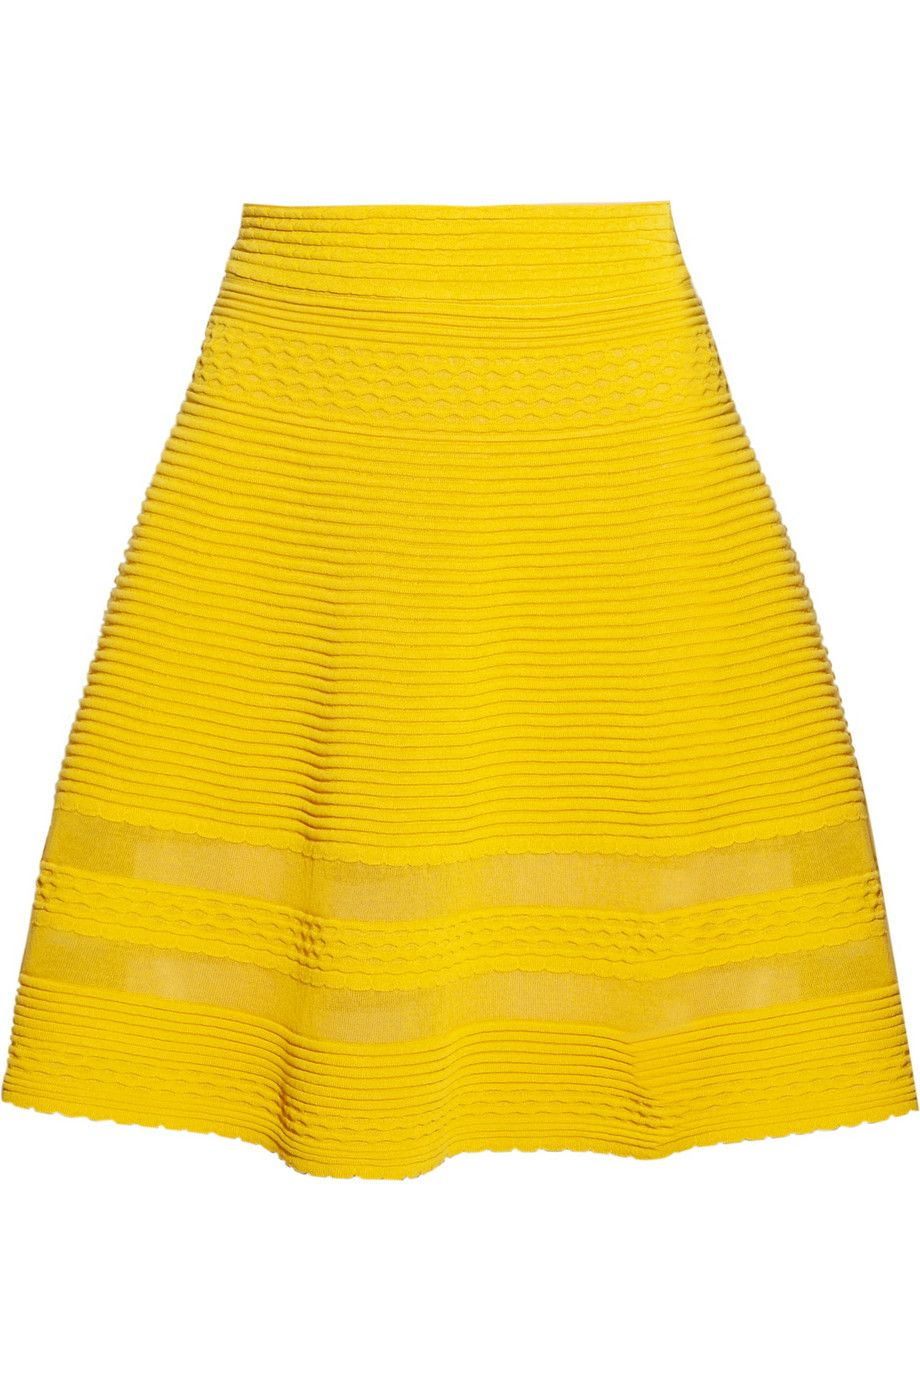 This skirt puts a smile on my face. That yellow exudes happiness.     M Missoni|Cotton-blend A-line skirt|NET-A-PORTER.COM